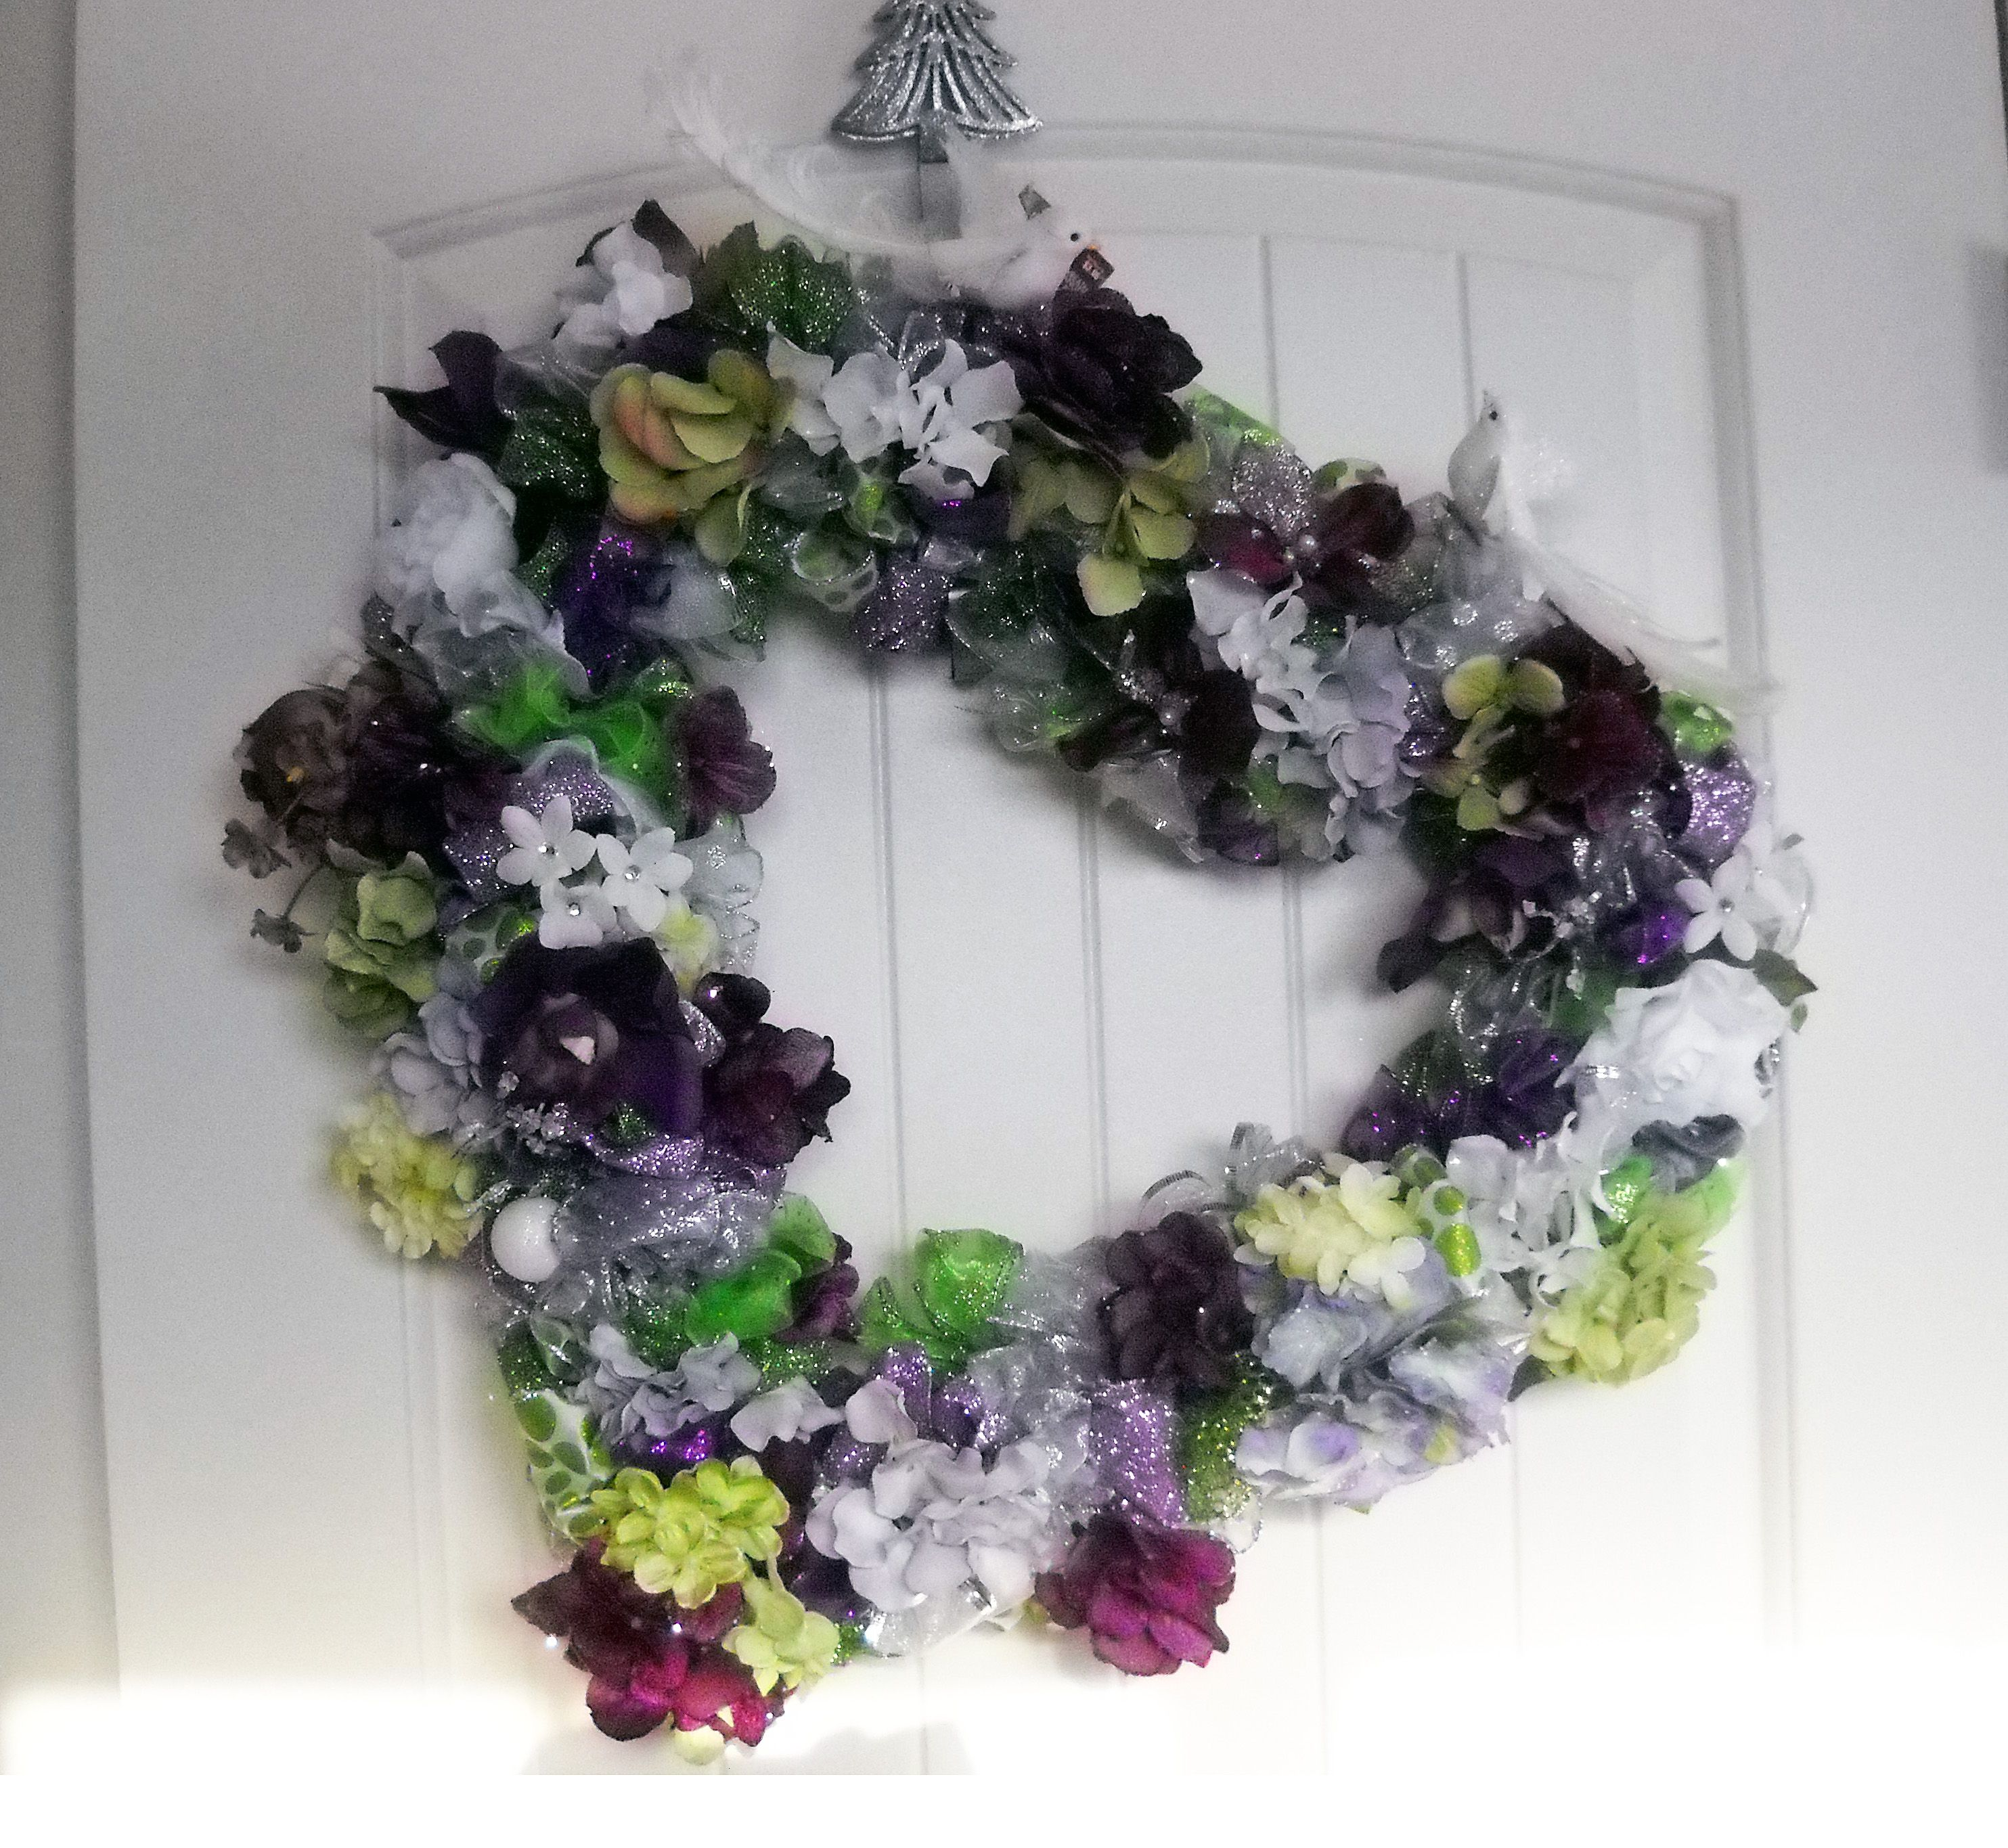 This Is A Beautiful Heart Shaped Wreath In Again The